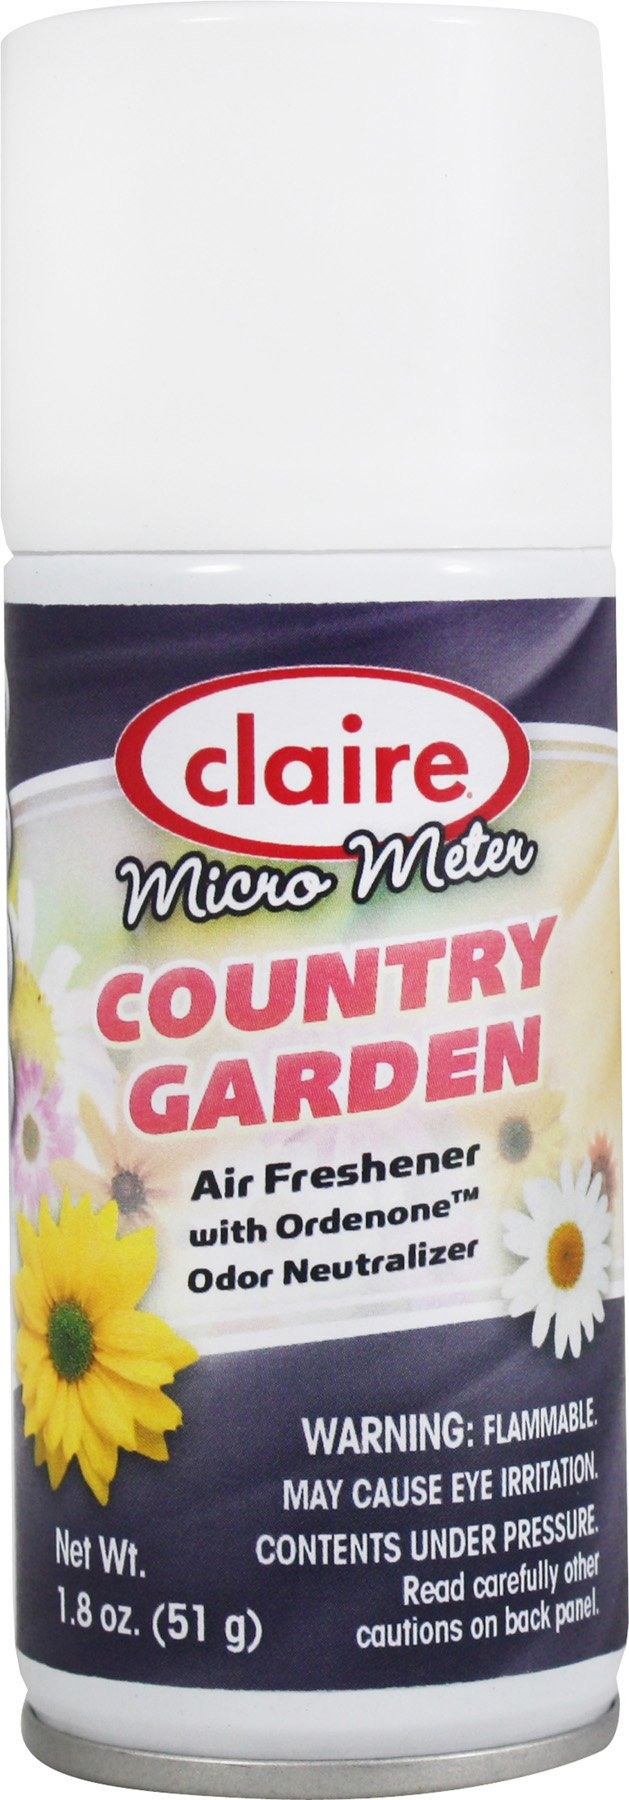 Clair CL224 Micro-Metered Air Freshener, Country Garden, 1.8 oz. Can (Pack of 12)